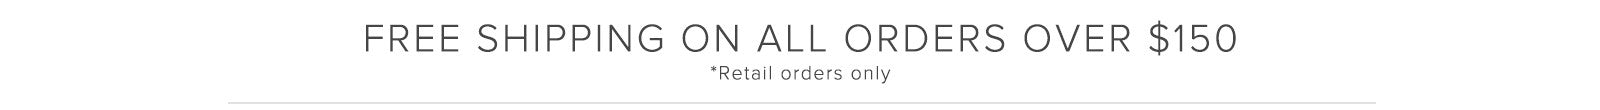 Free shipping on all retail orders over $150